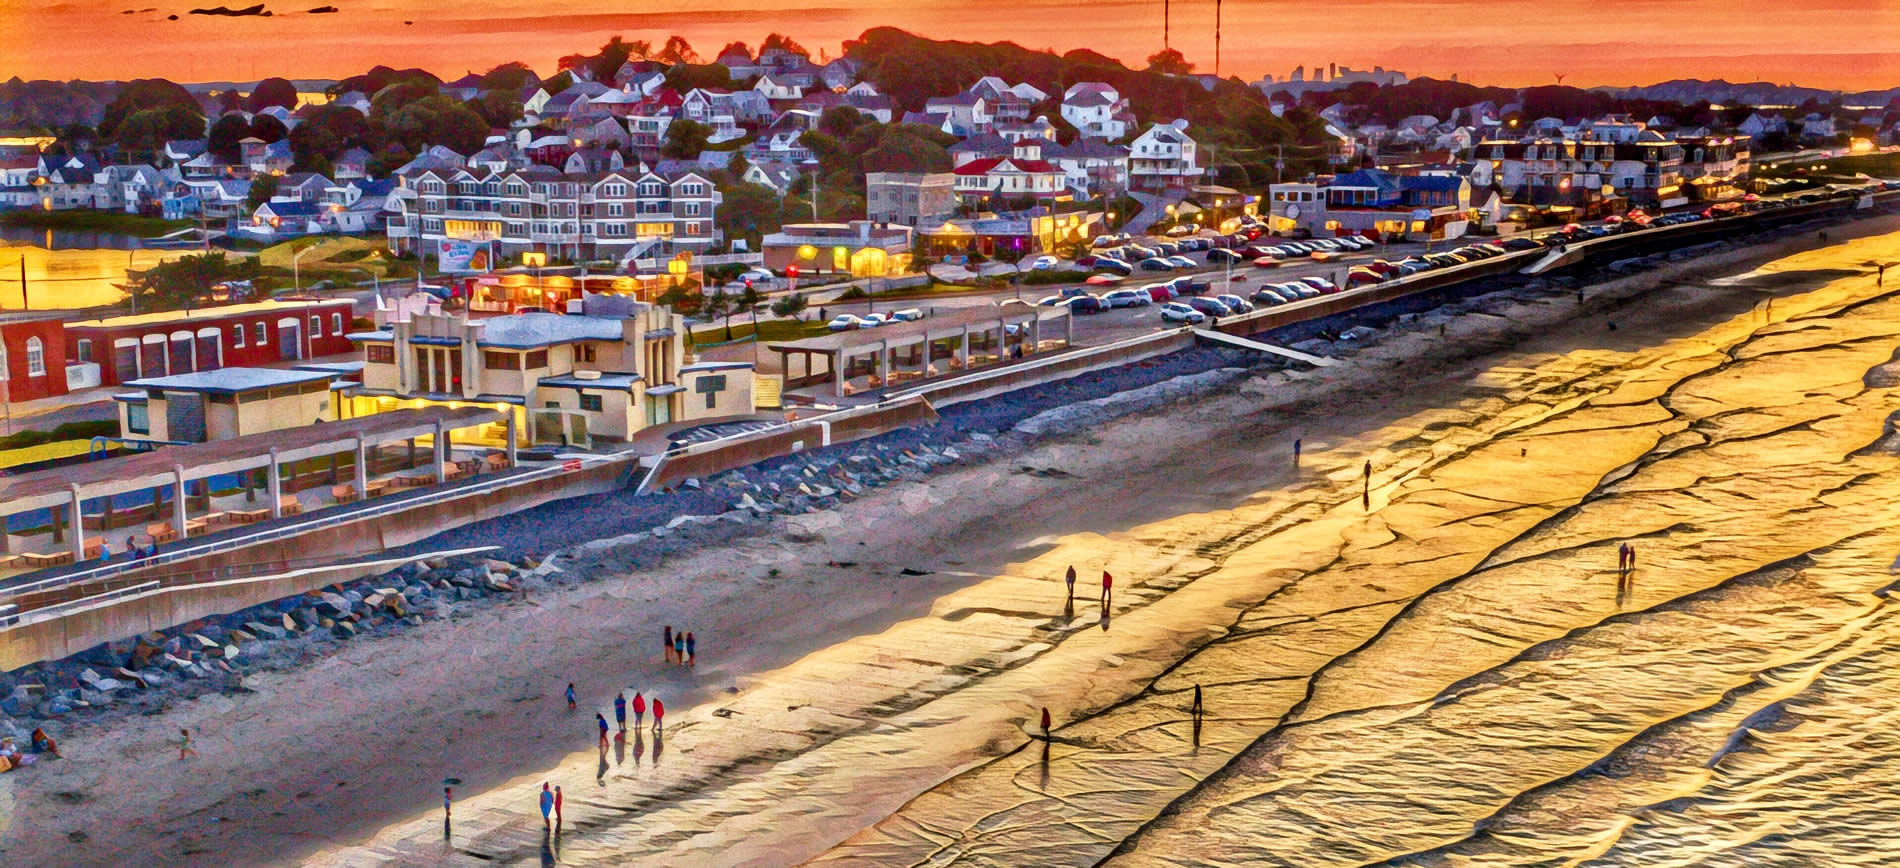 nantasket beach in hull mass